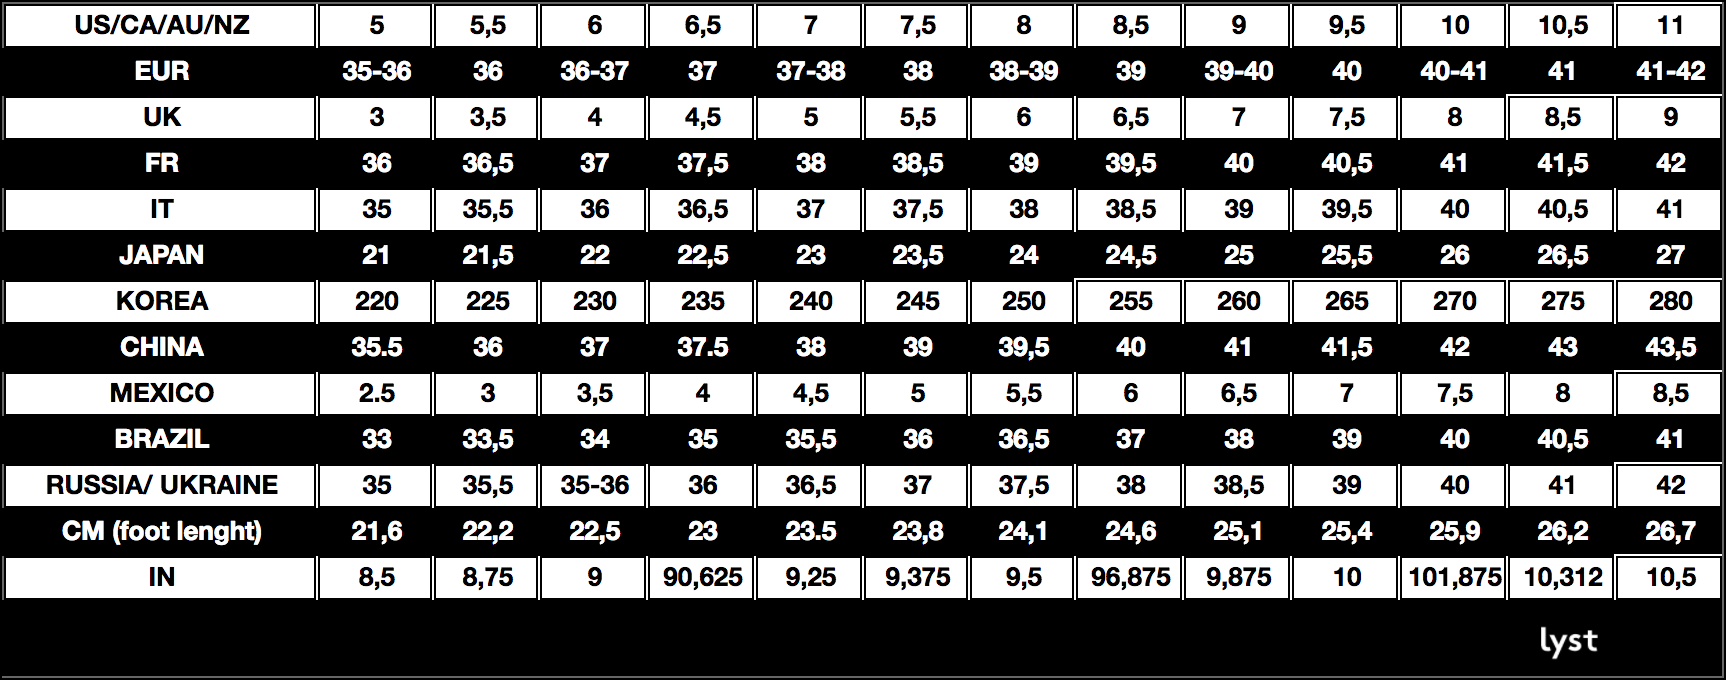 Lyst Shoe Size Conversion Chart